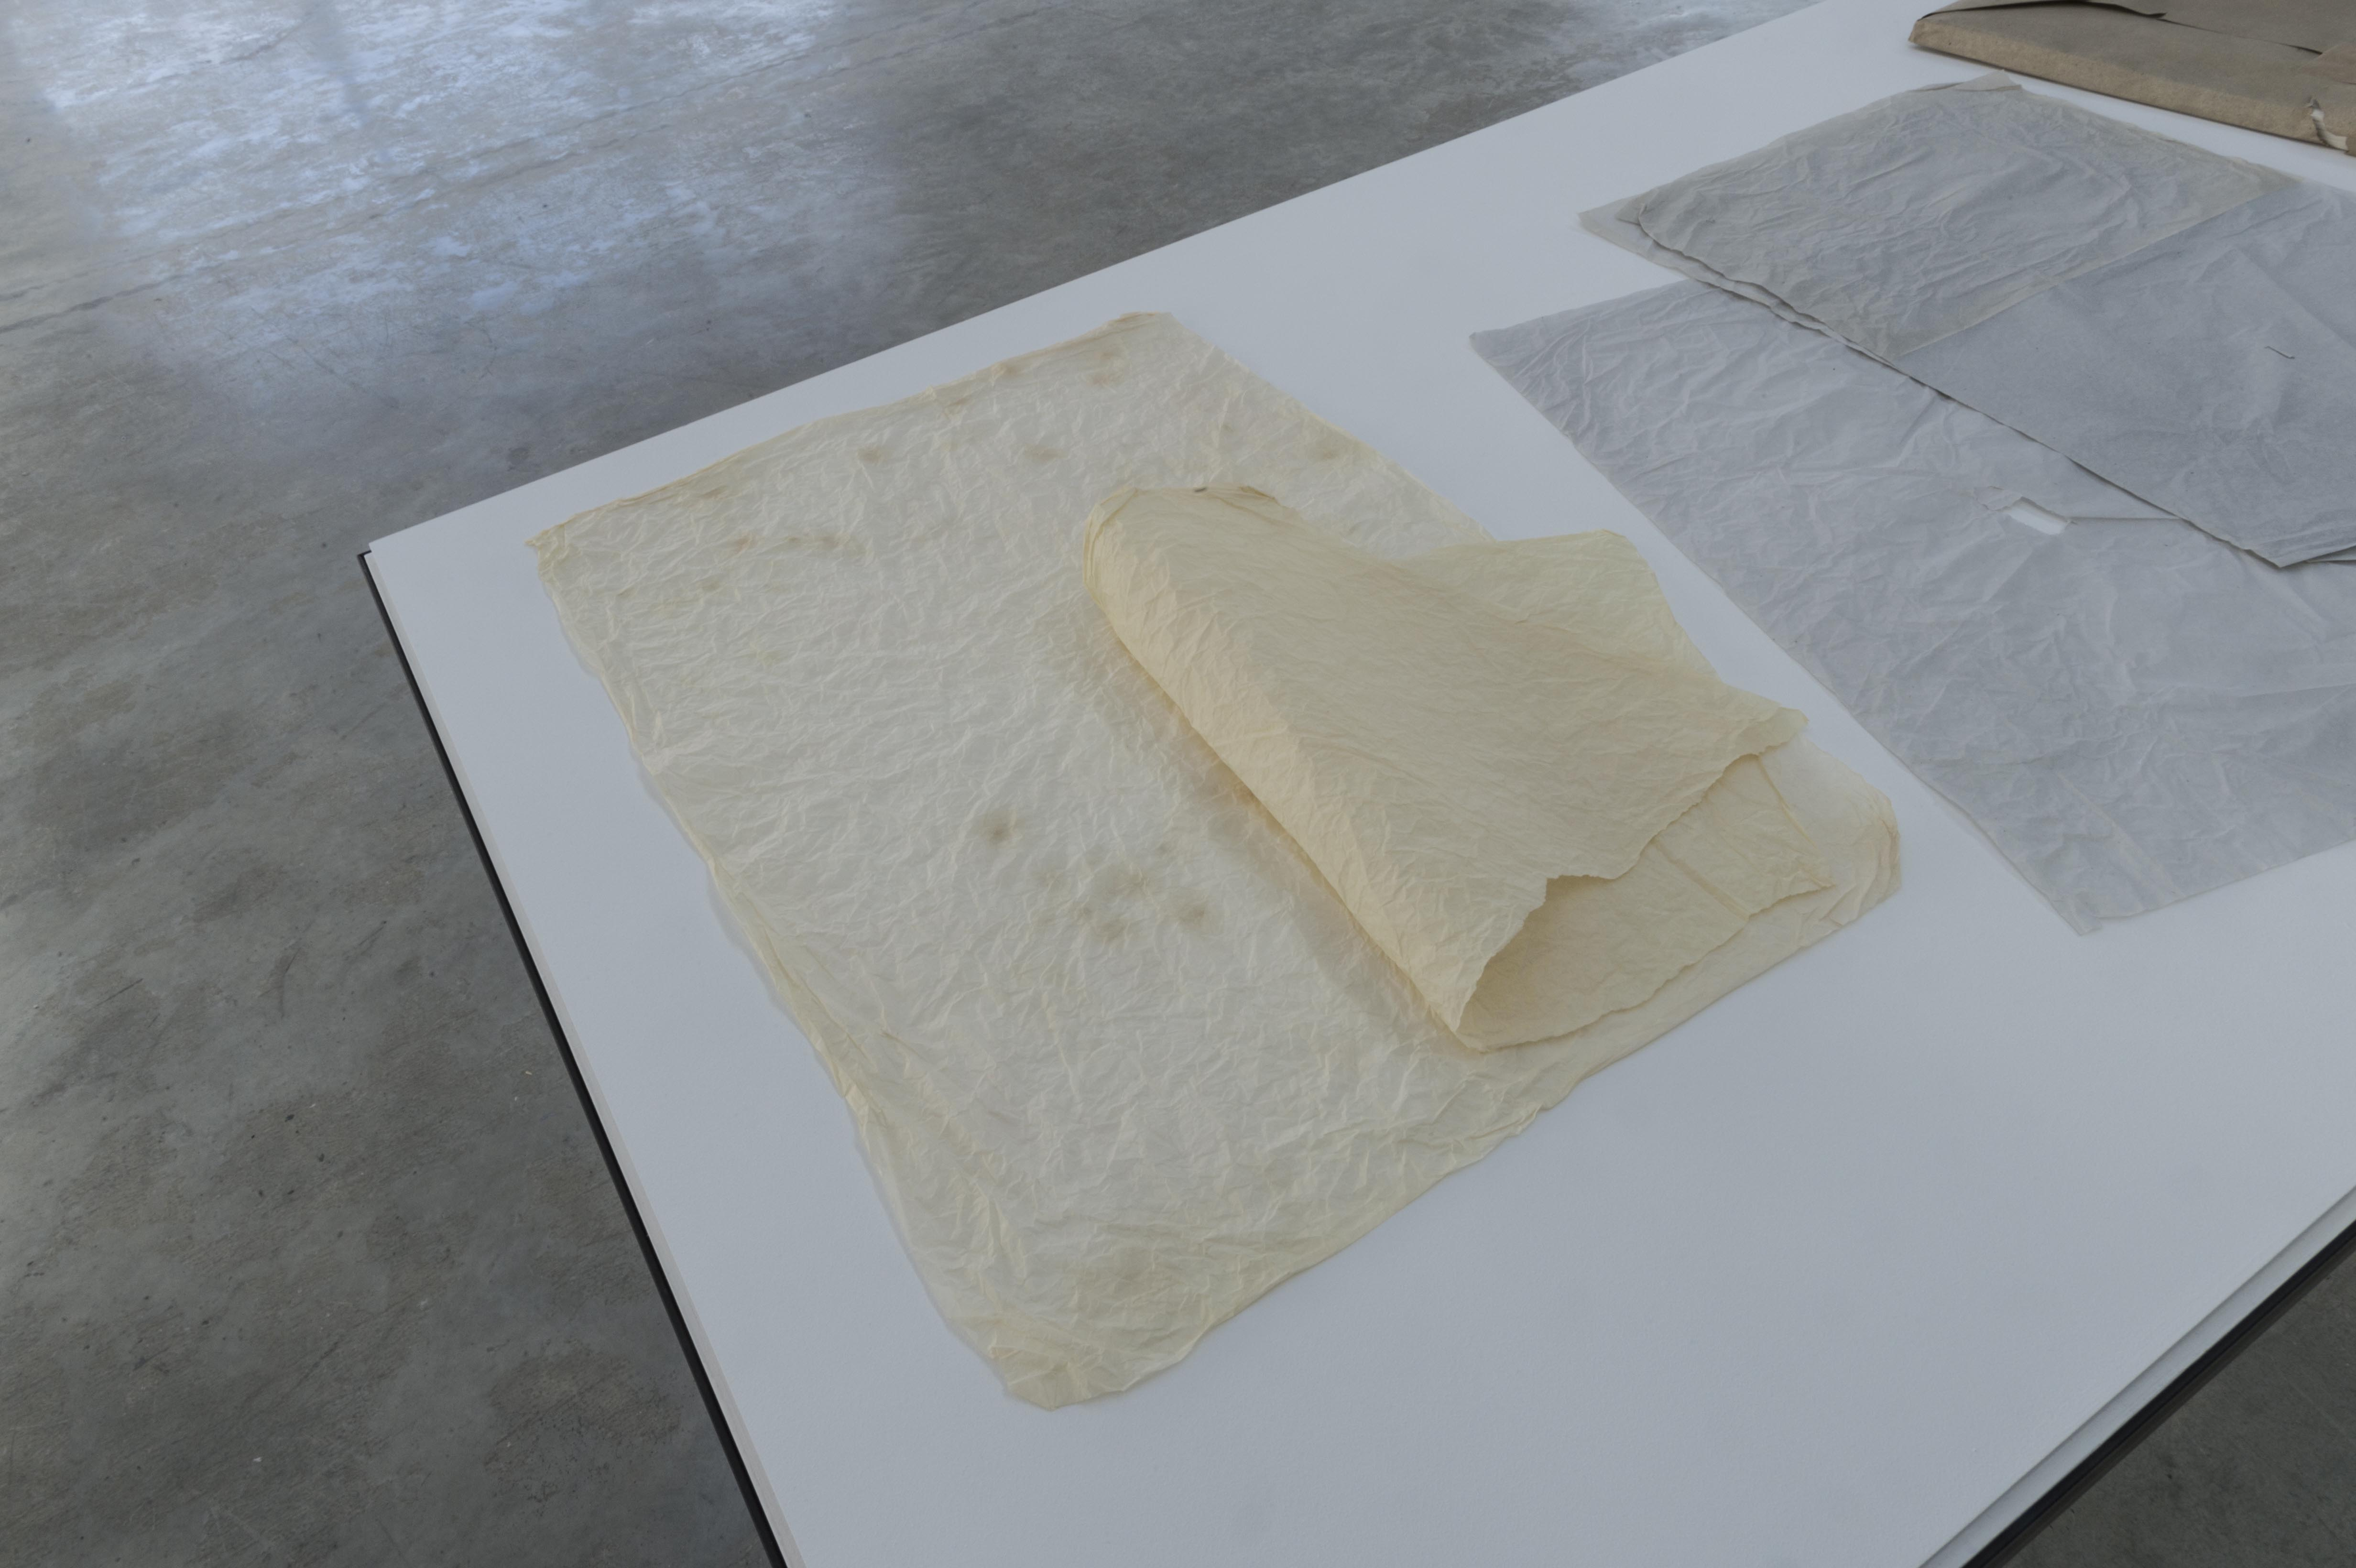 ane-mette-hol-untiltled-drawing-for-different-objects-credit-la-kunsthalle-photo-seb-bozon